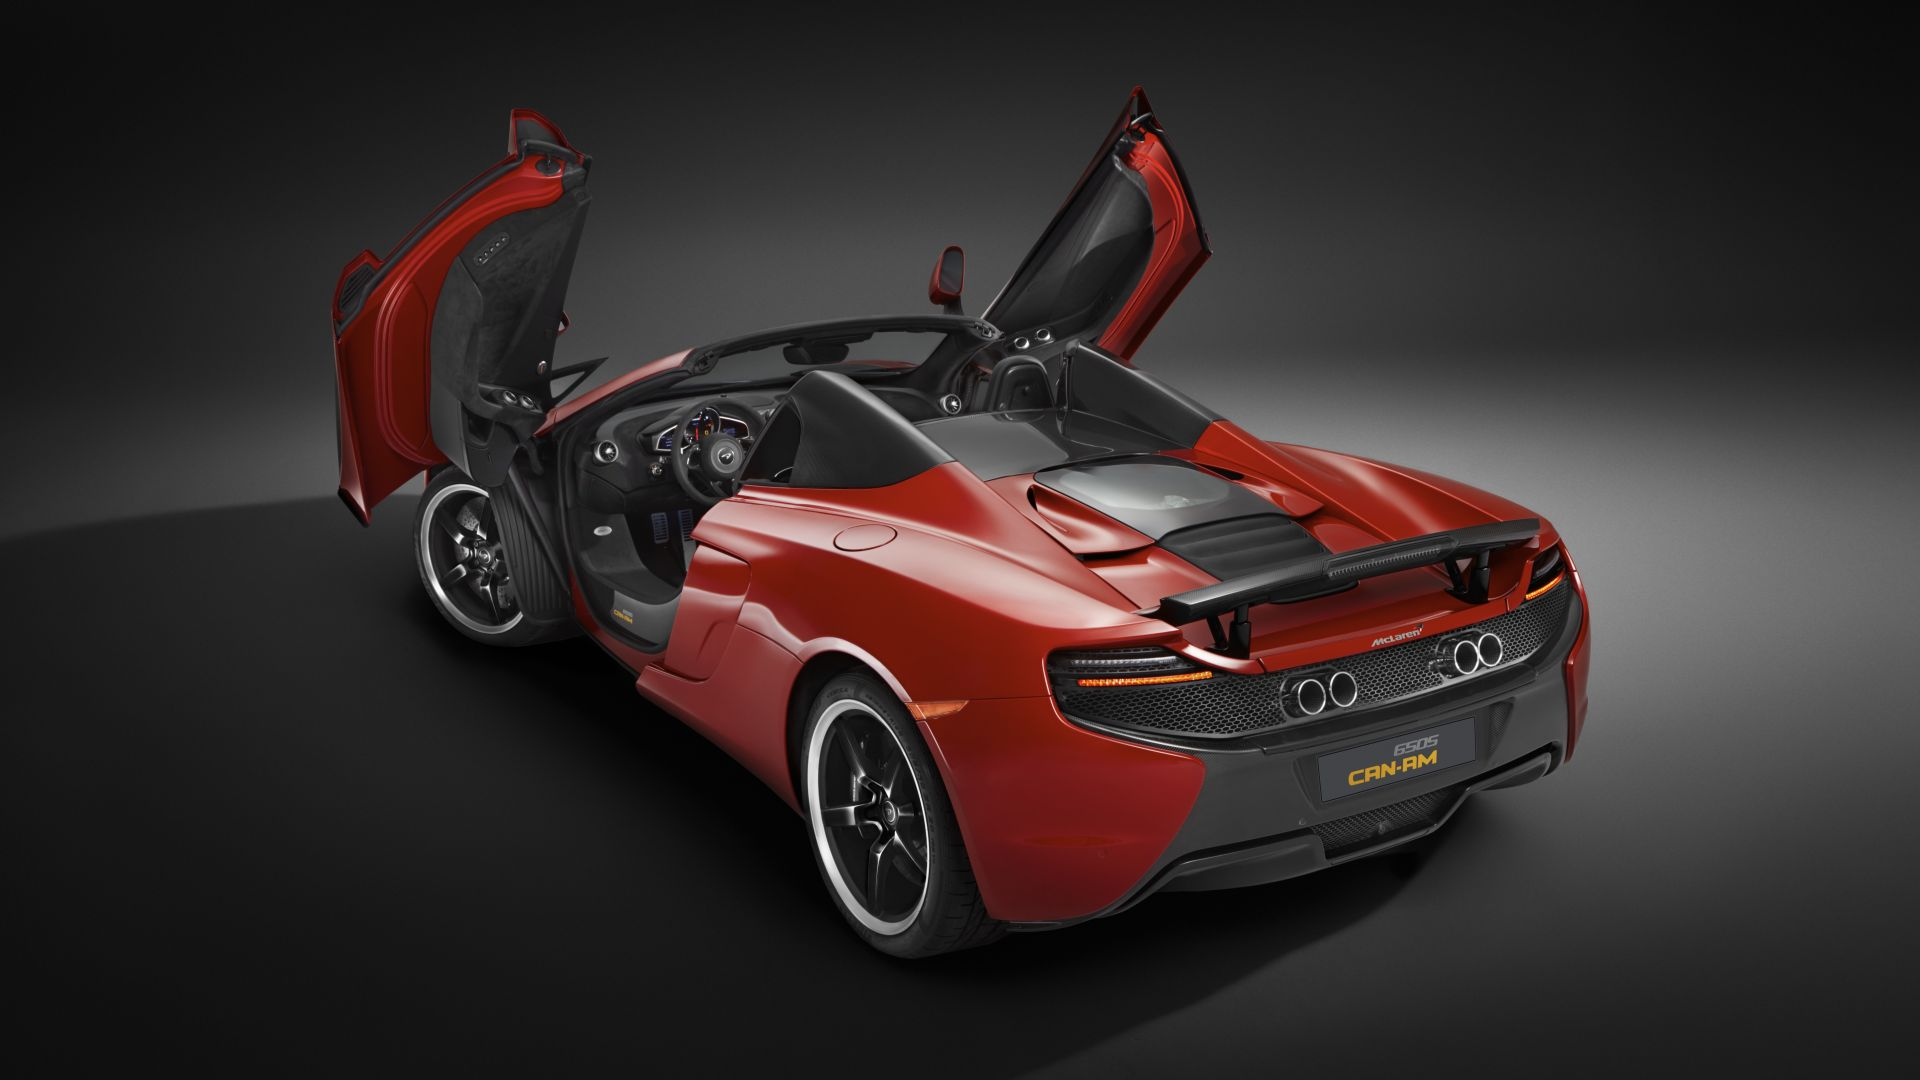 суперкар, скорость, McLaren 650S Spider, supercar, McLaren, luxury cars, спортивные машины, McLaren 650S Spider, supercar, McLaren, red, sports car, speed, test drive (horizontal)